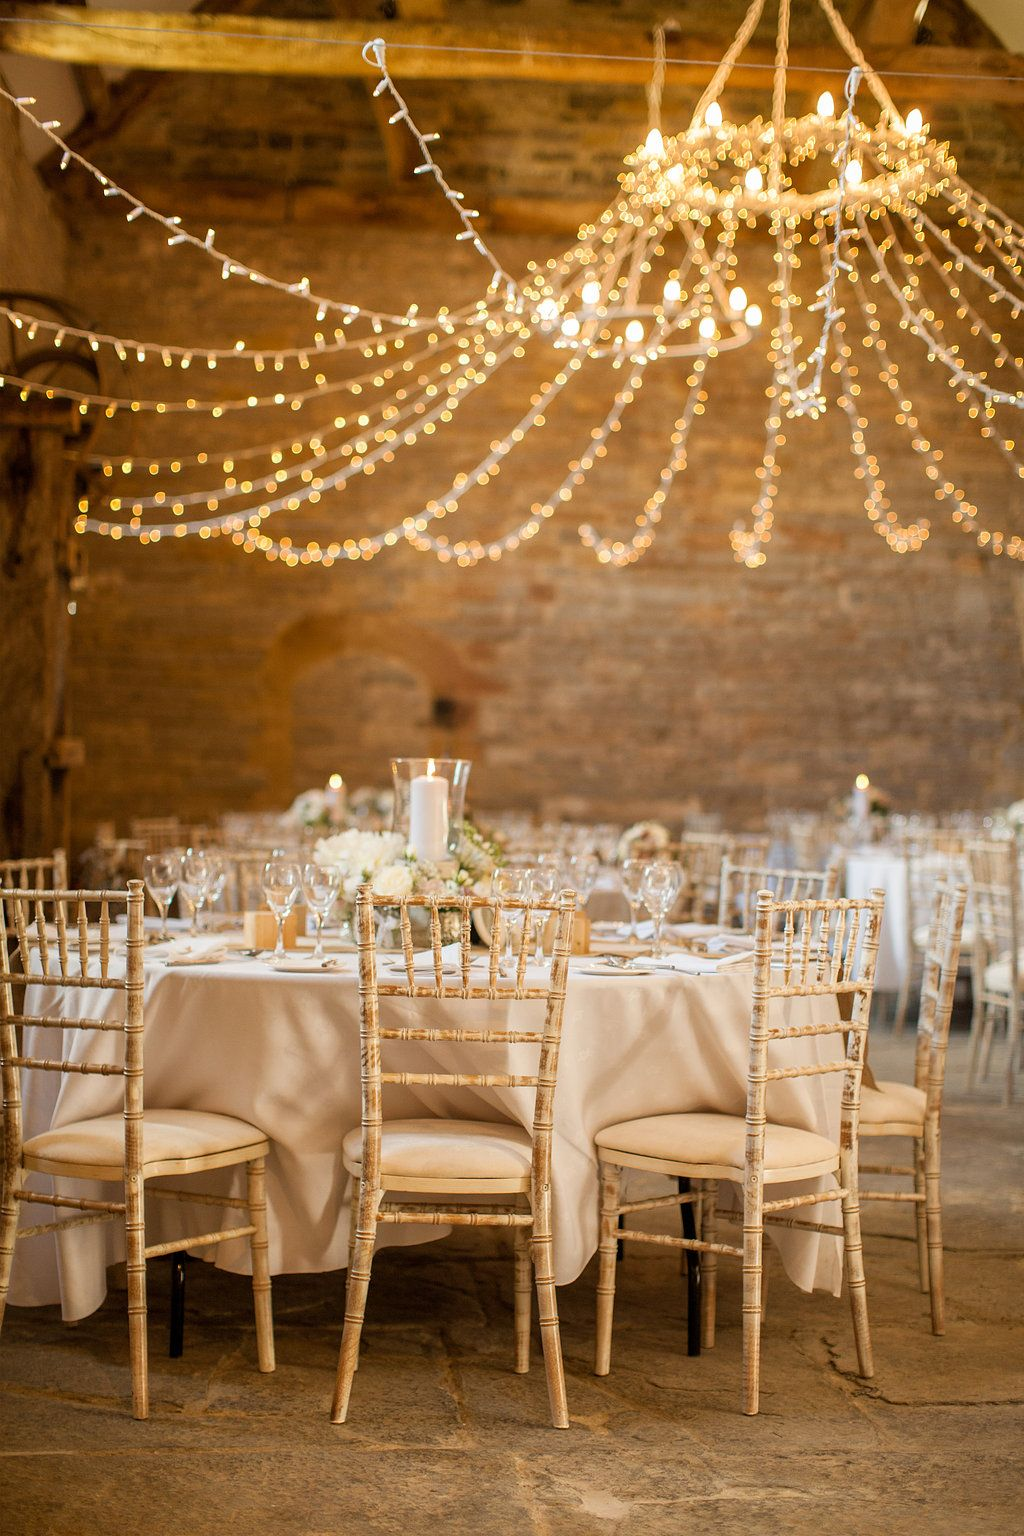 Wedding ideas rustic theme  Rustic Chic Wedding Theme  Reception halls Hall and Hula hoop